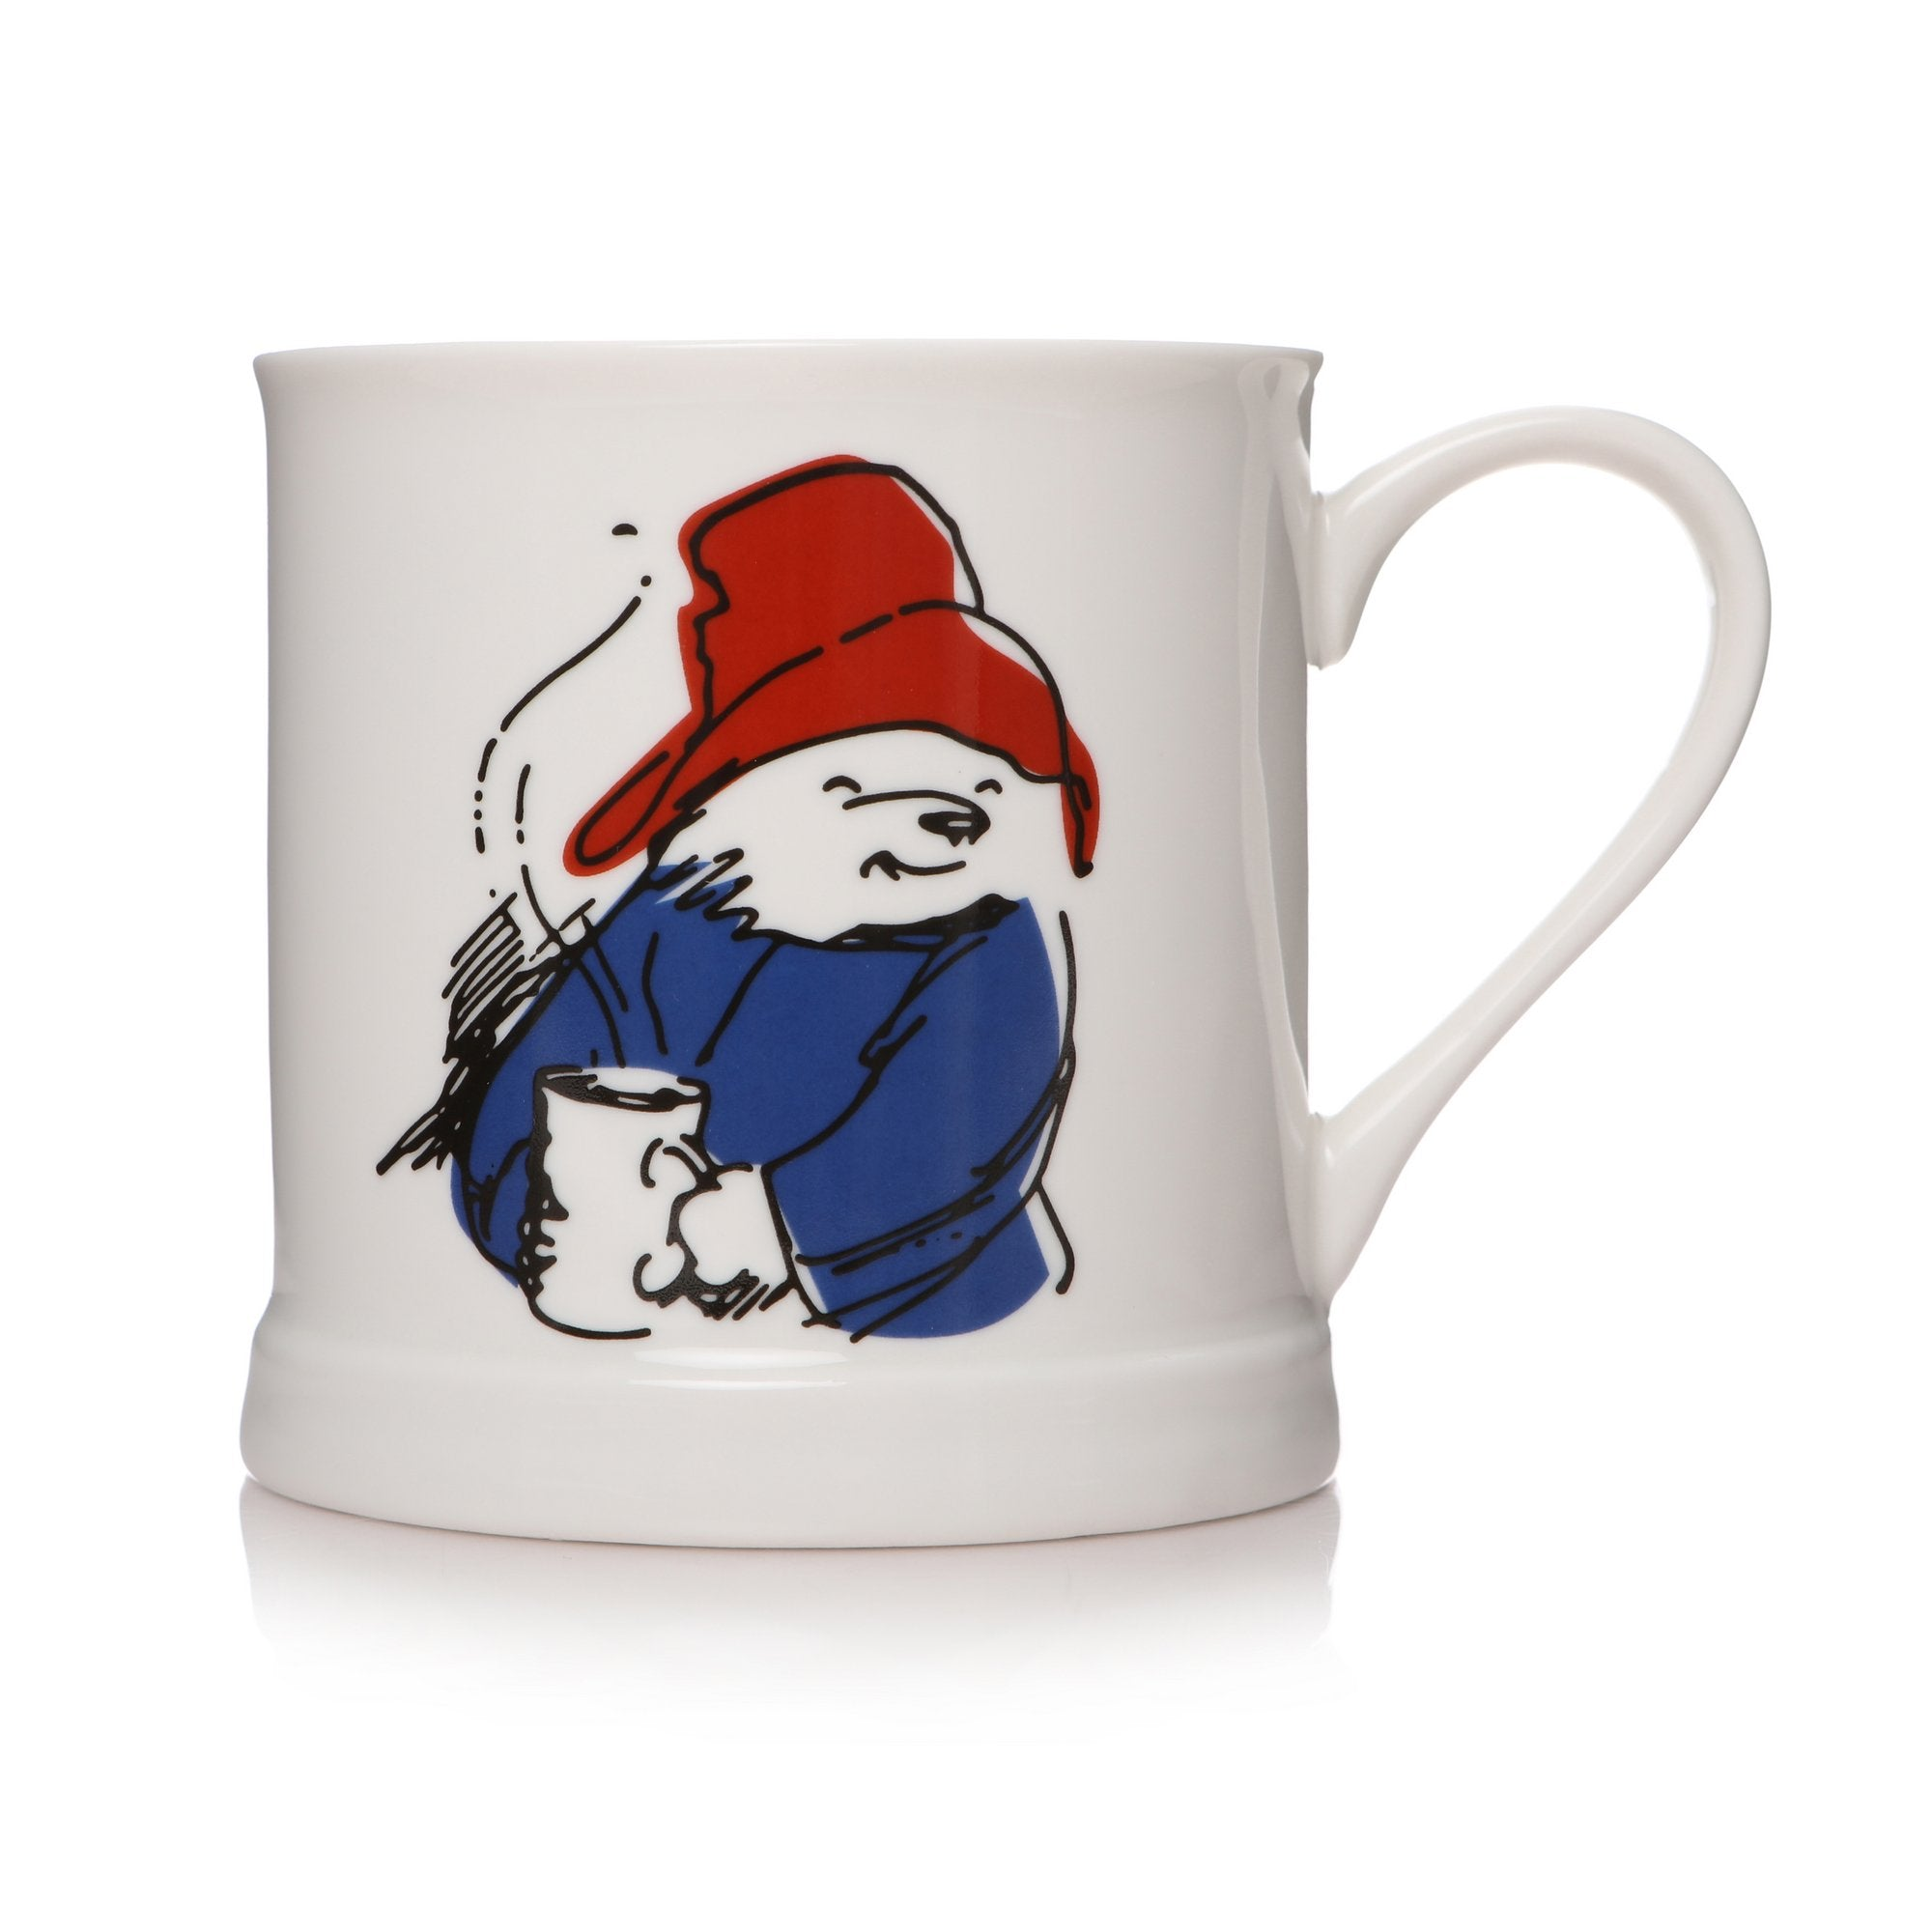 Paddington Bear Mug - Head Stuck